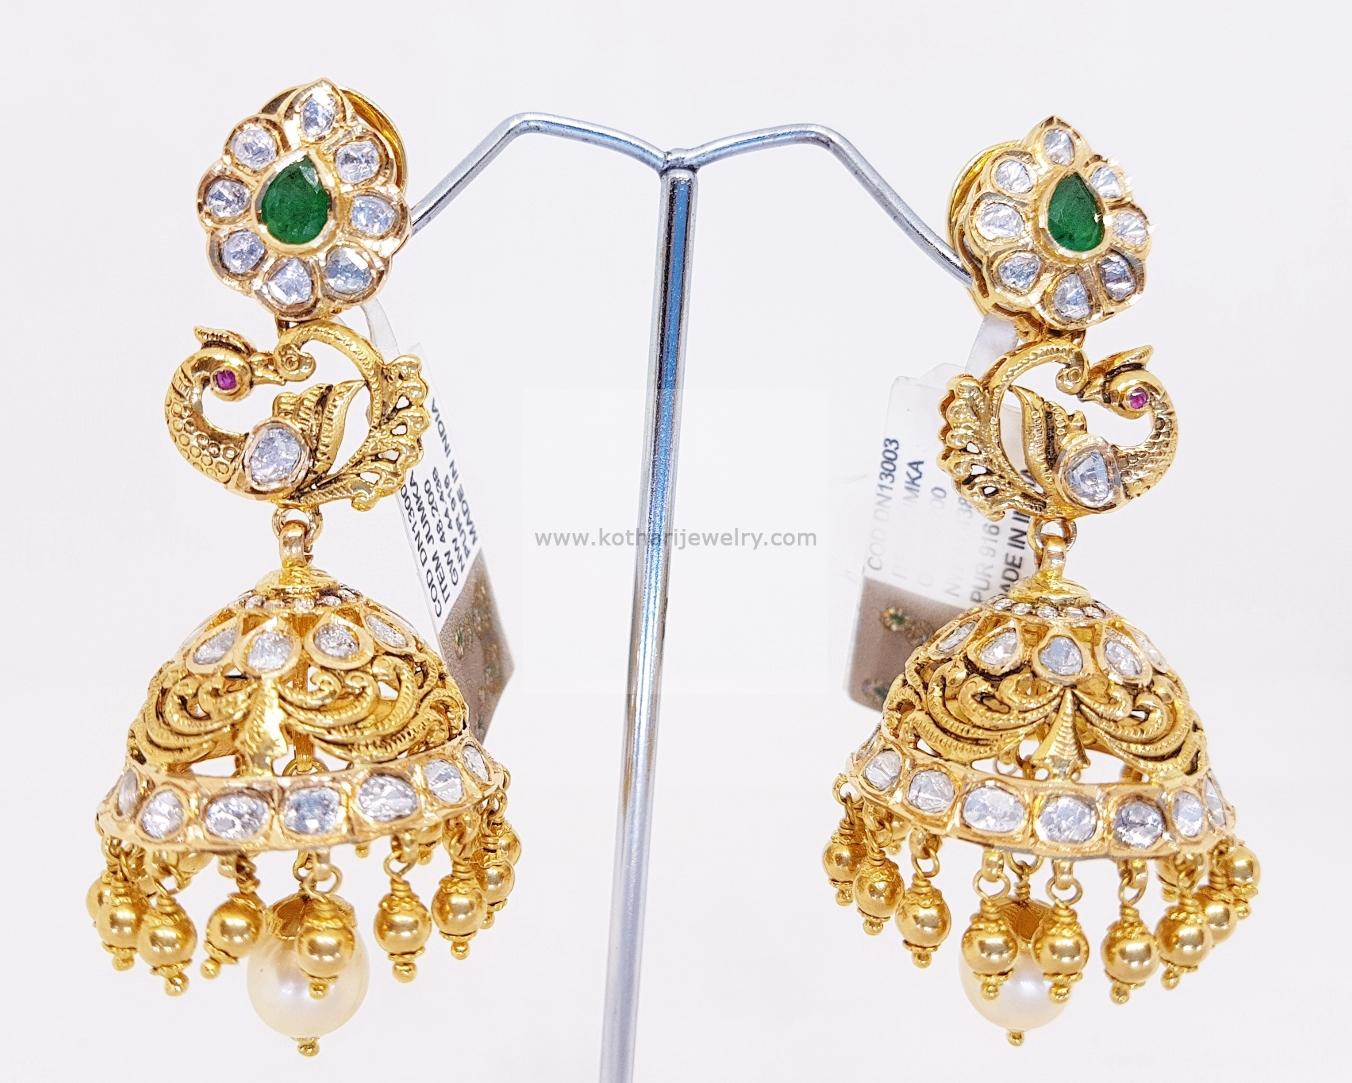 Gold Earrings, Gold Rings - 22kt gold jhumka, Gold jhumka with ...